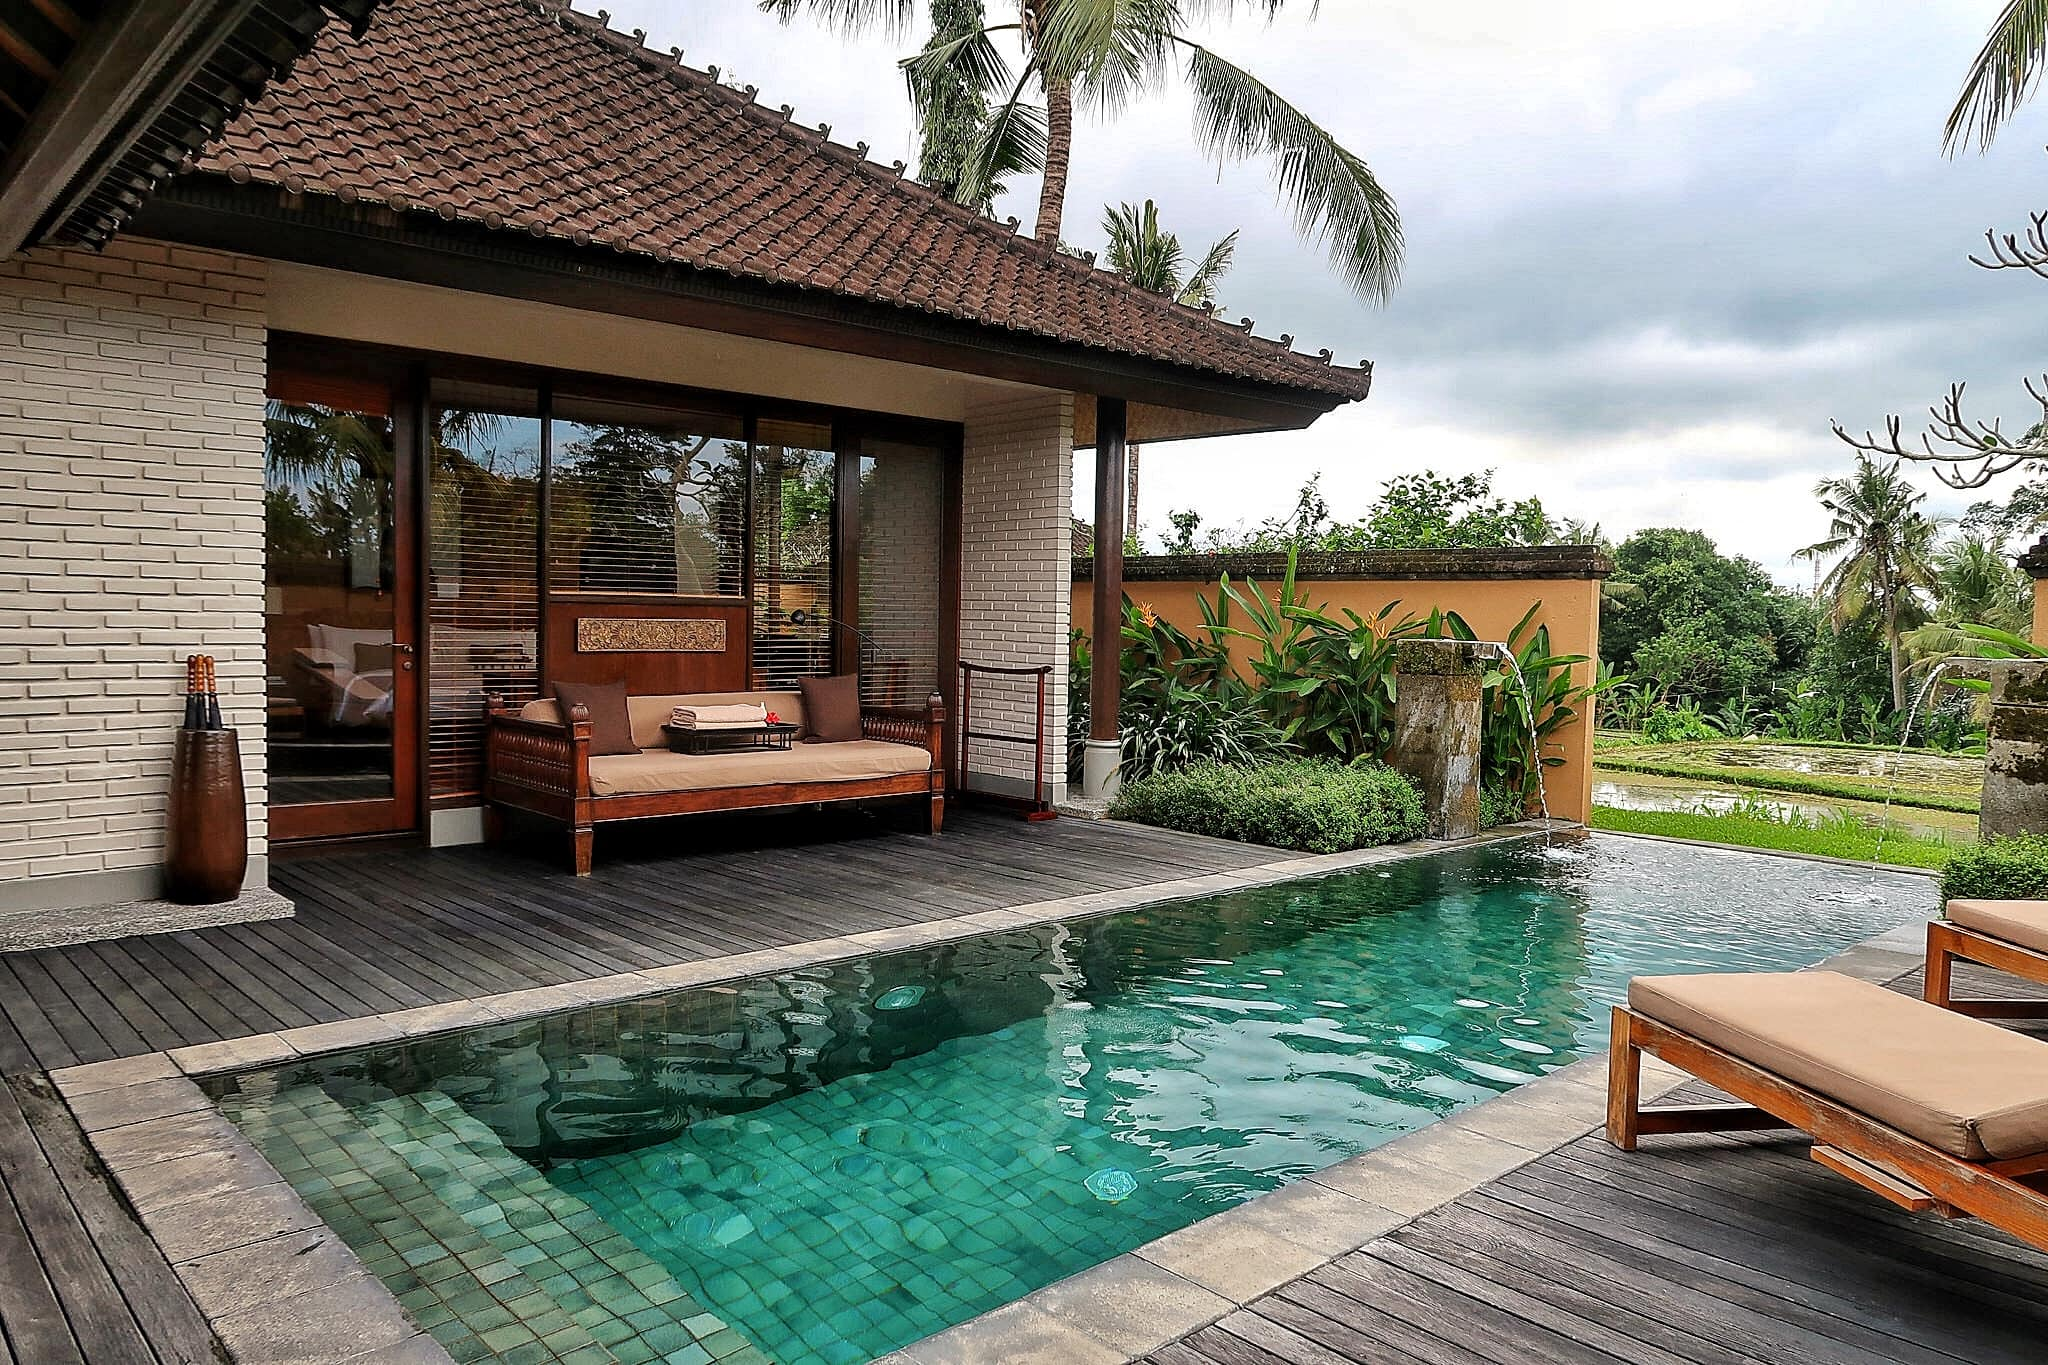 Luxury resort review the chedi club tanah gajah ubud bali for Top hotels in ubud bali